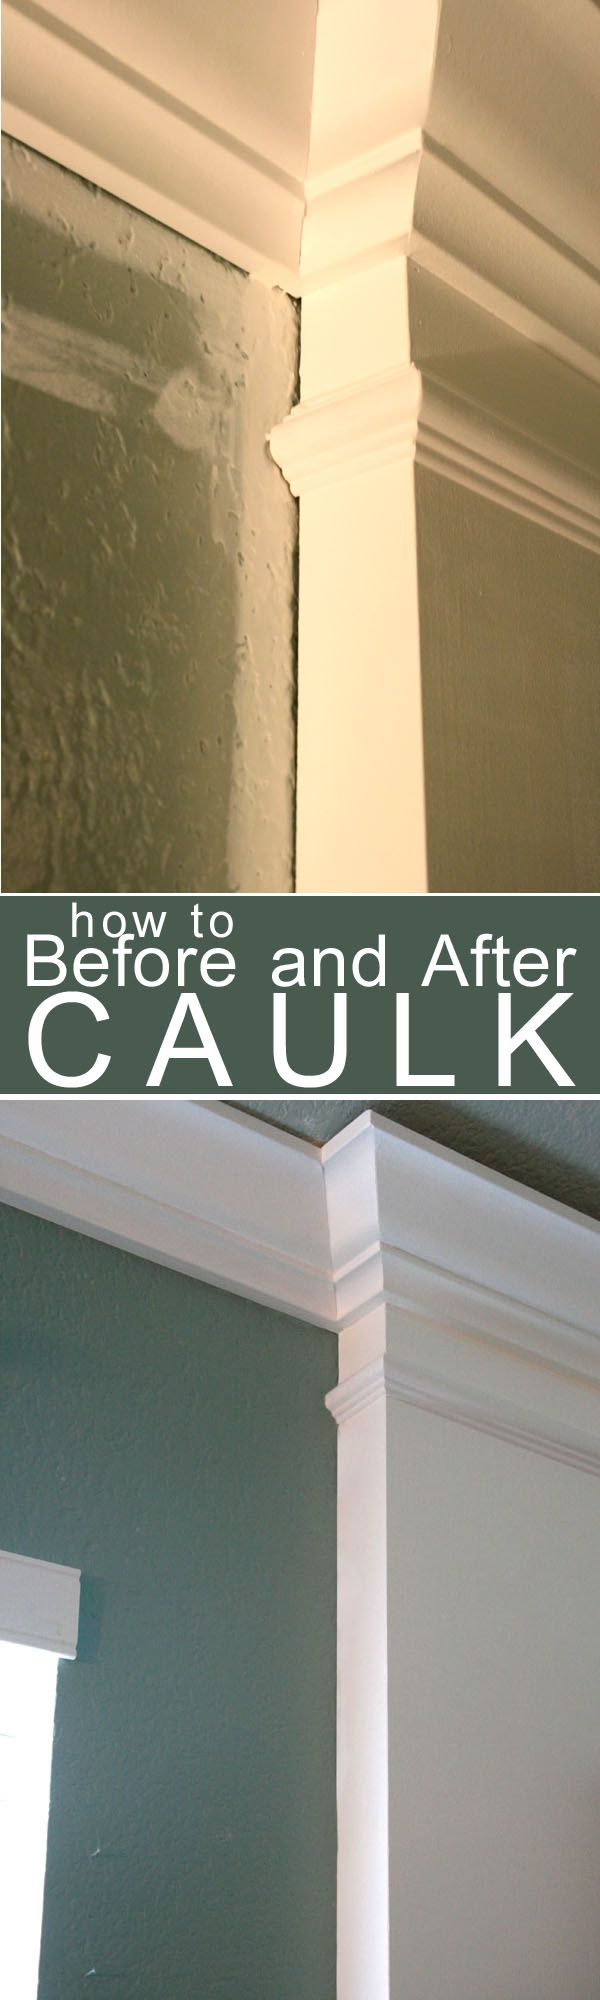 How to Caulk Moldings! #caulk #moldings #DIY